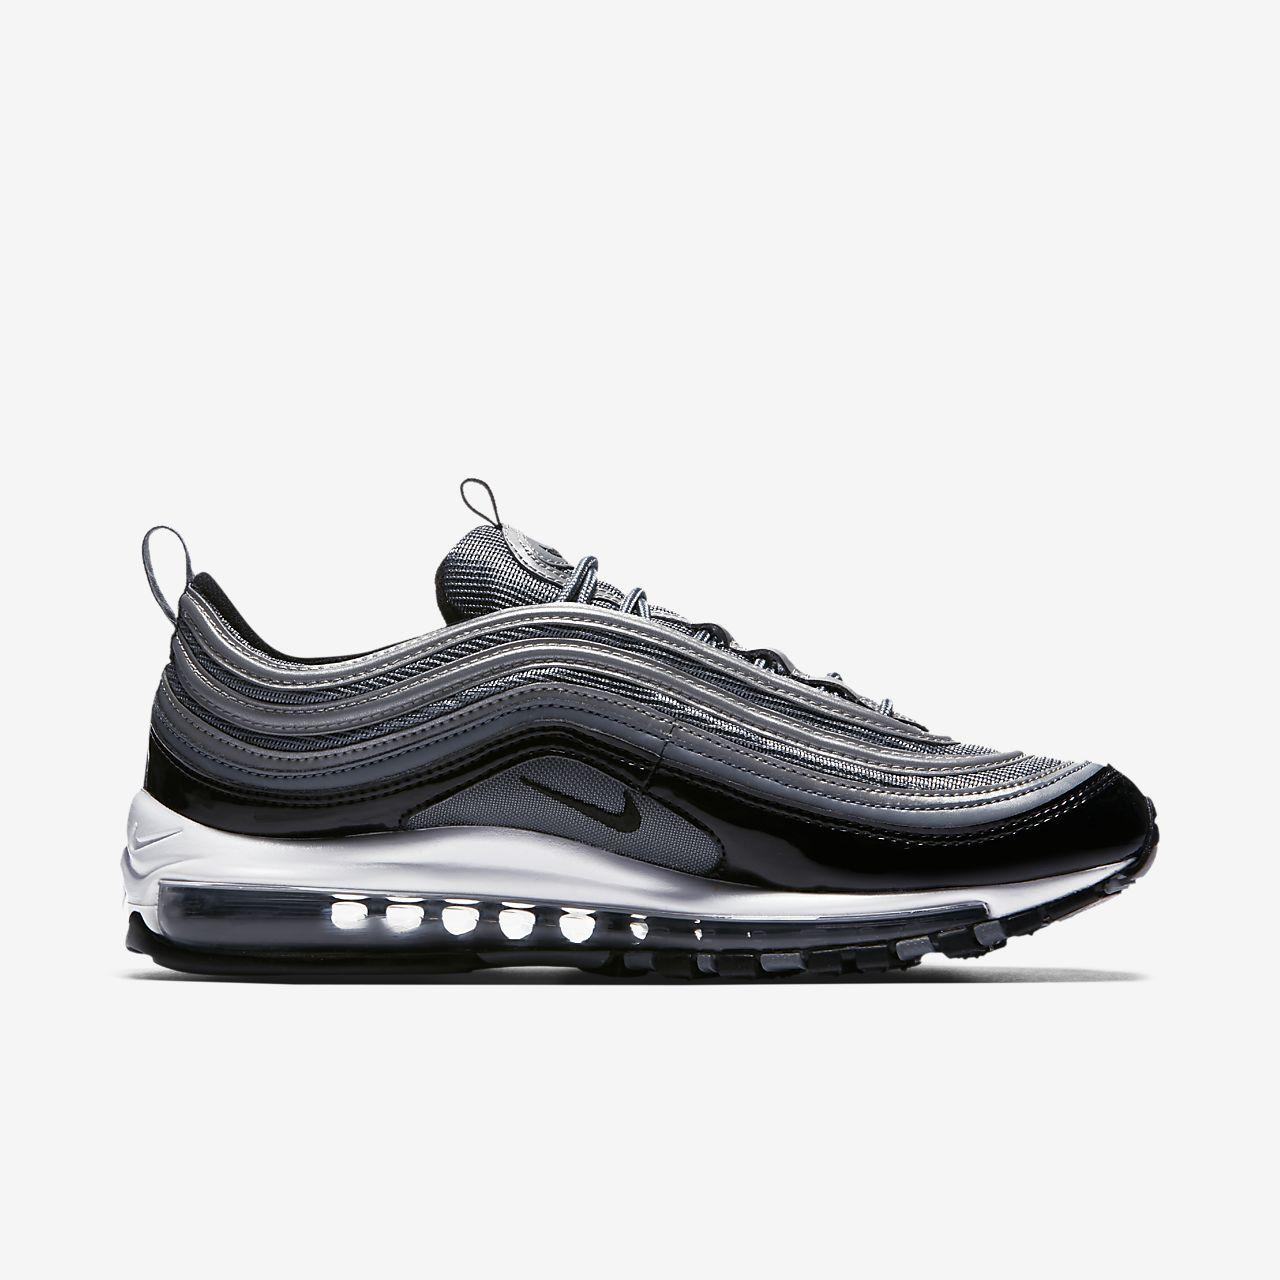 Air Max 97 Ul 17 Si - Chaussures - Low-dessus Et Chaussures De Sport Nike BKbCd9